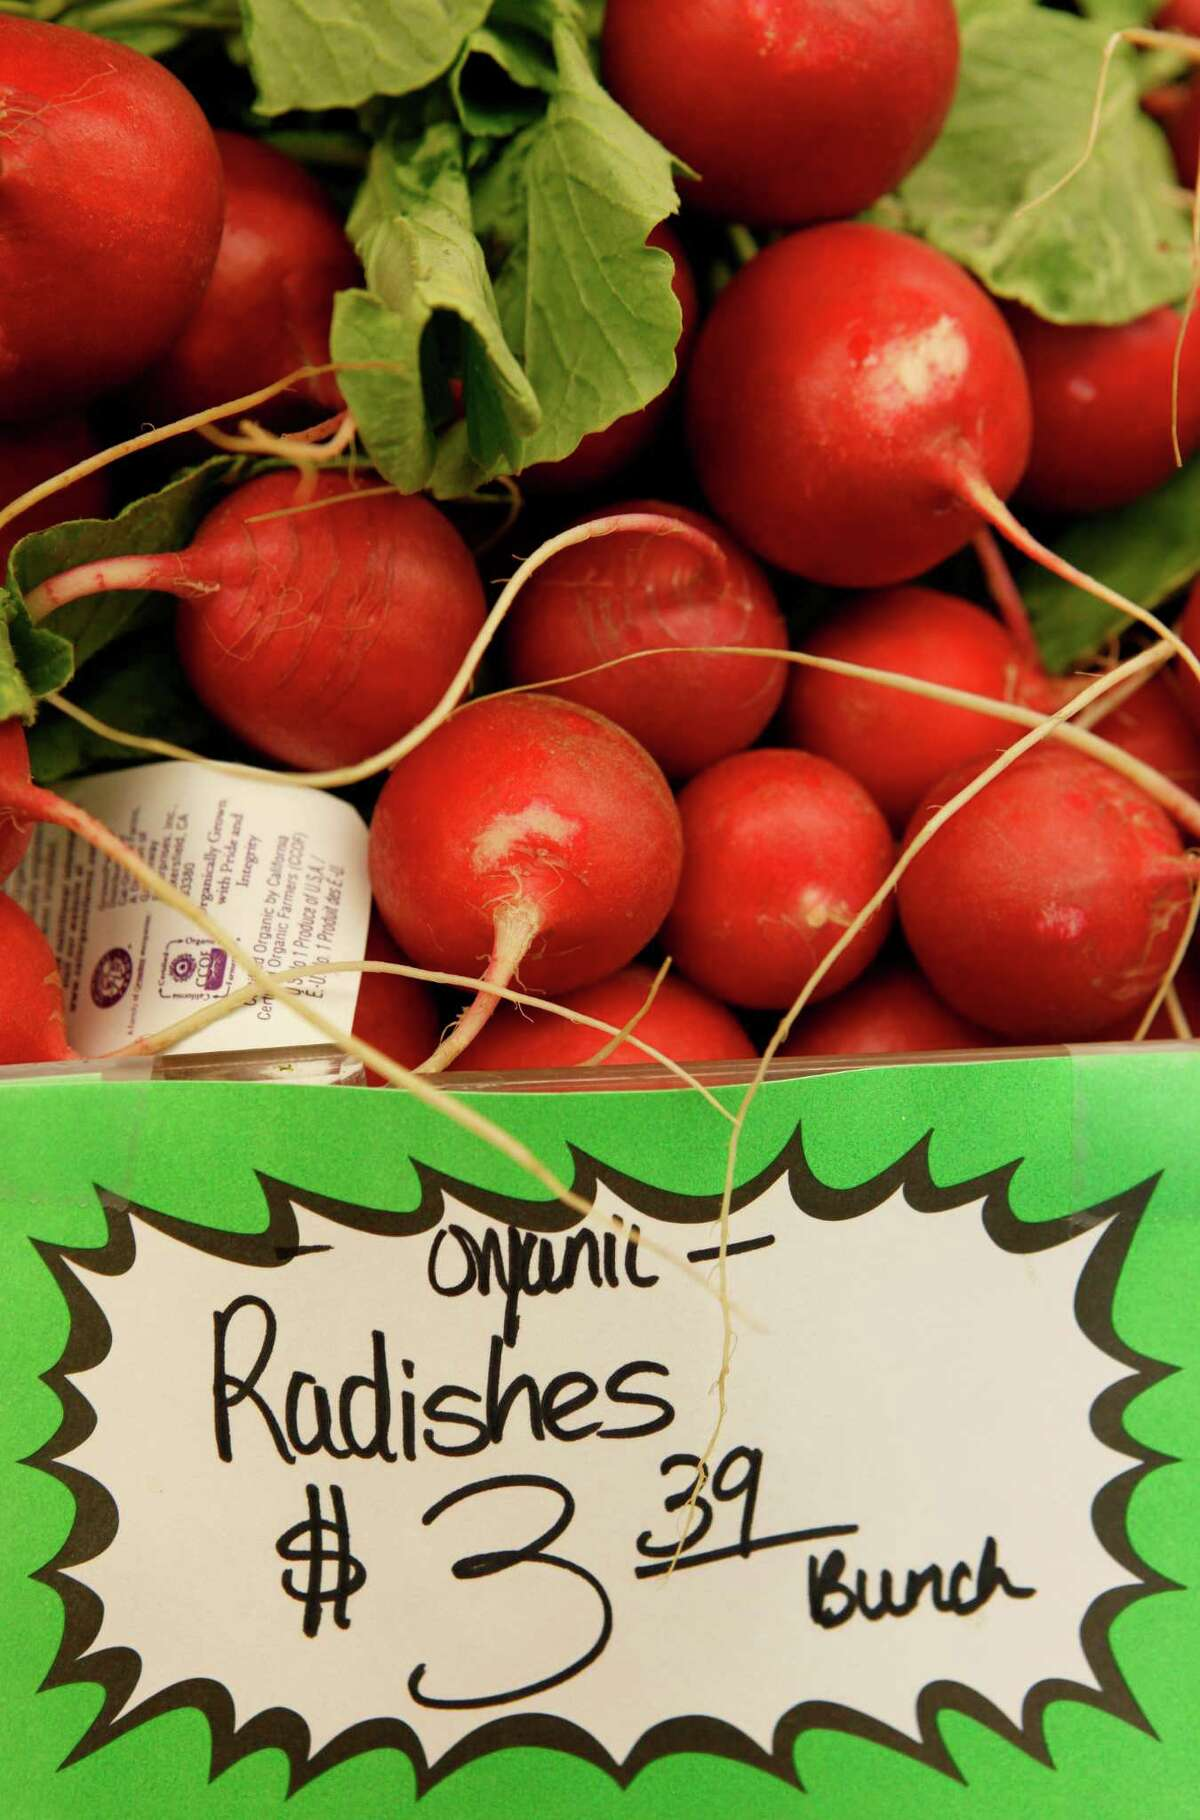 FILE - HOLD FOR RELEASE UNTIL 5:00 P.M. EDT AND THEREAFTER ON SEPT. 3, 2012 - This March 16, 2011, file photo shows organic radishes at the Pacifica Farmers Market in Pacifica, Calif. Patient after patient asked: Is eating organic food, which costs more, really better for me? Unsure, Stanford University doctors dug through reams of research to find out _ and concluded there's little evidence that going organic is much healthier, citing only a few differences involving pesticides and antibiotics. Eating organic fruits and vegetables can lower exposure to pesticides, including for children _ but the amount measured from conventionally grown produce was within safety limits, the researchers reported Monday, Sept. 3, 2012. (AP Photo, File)